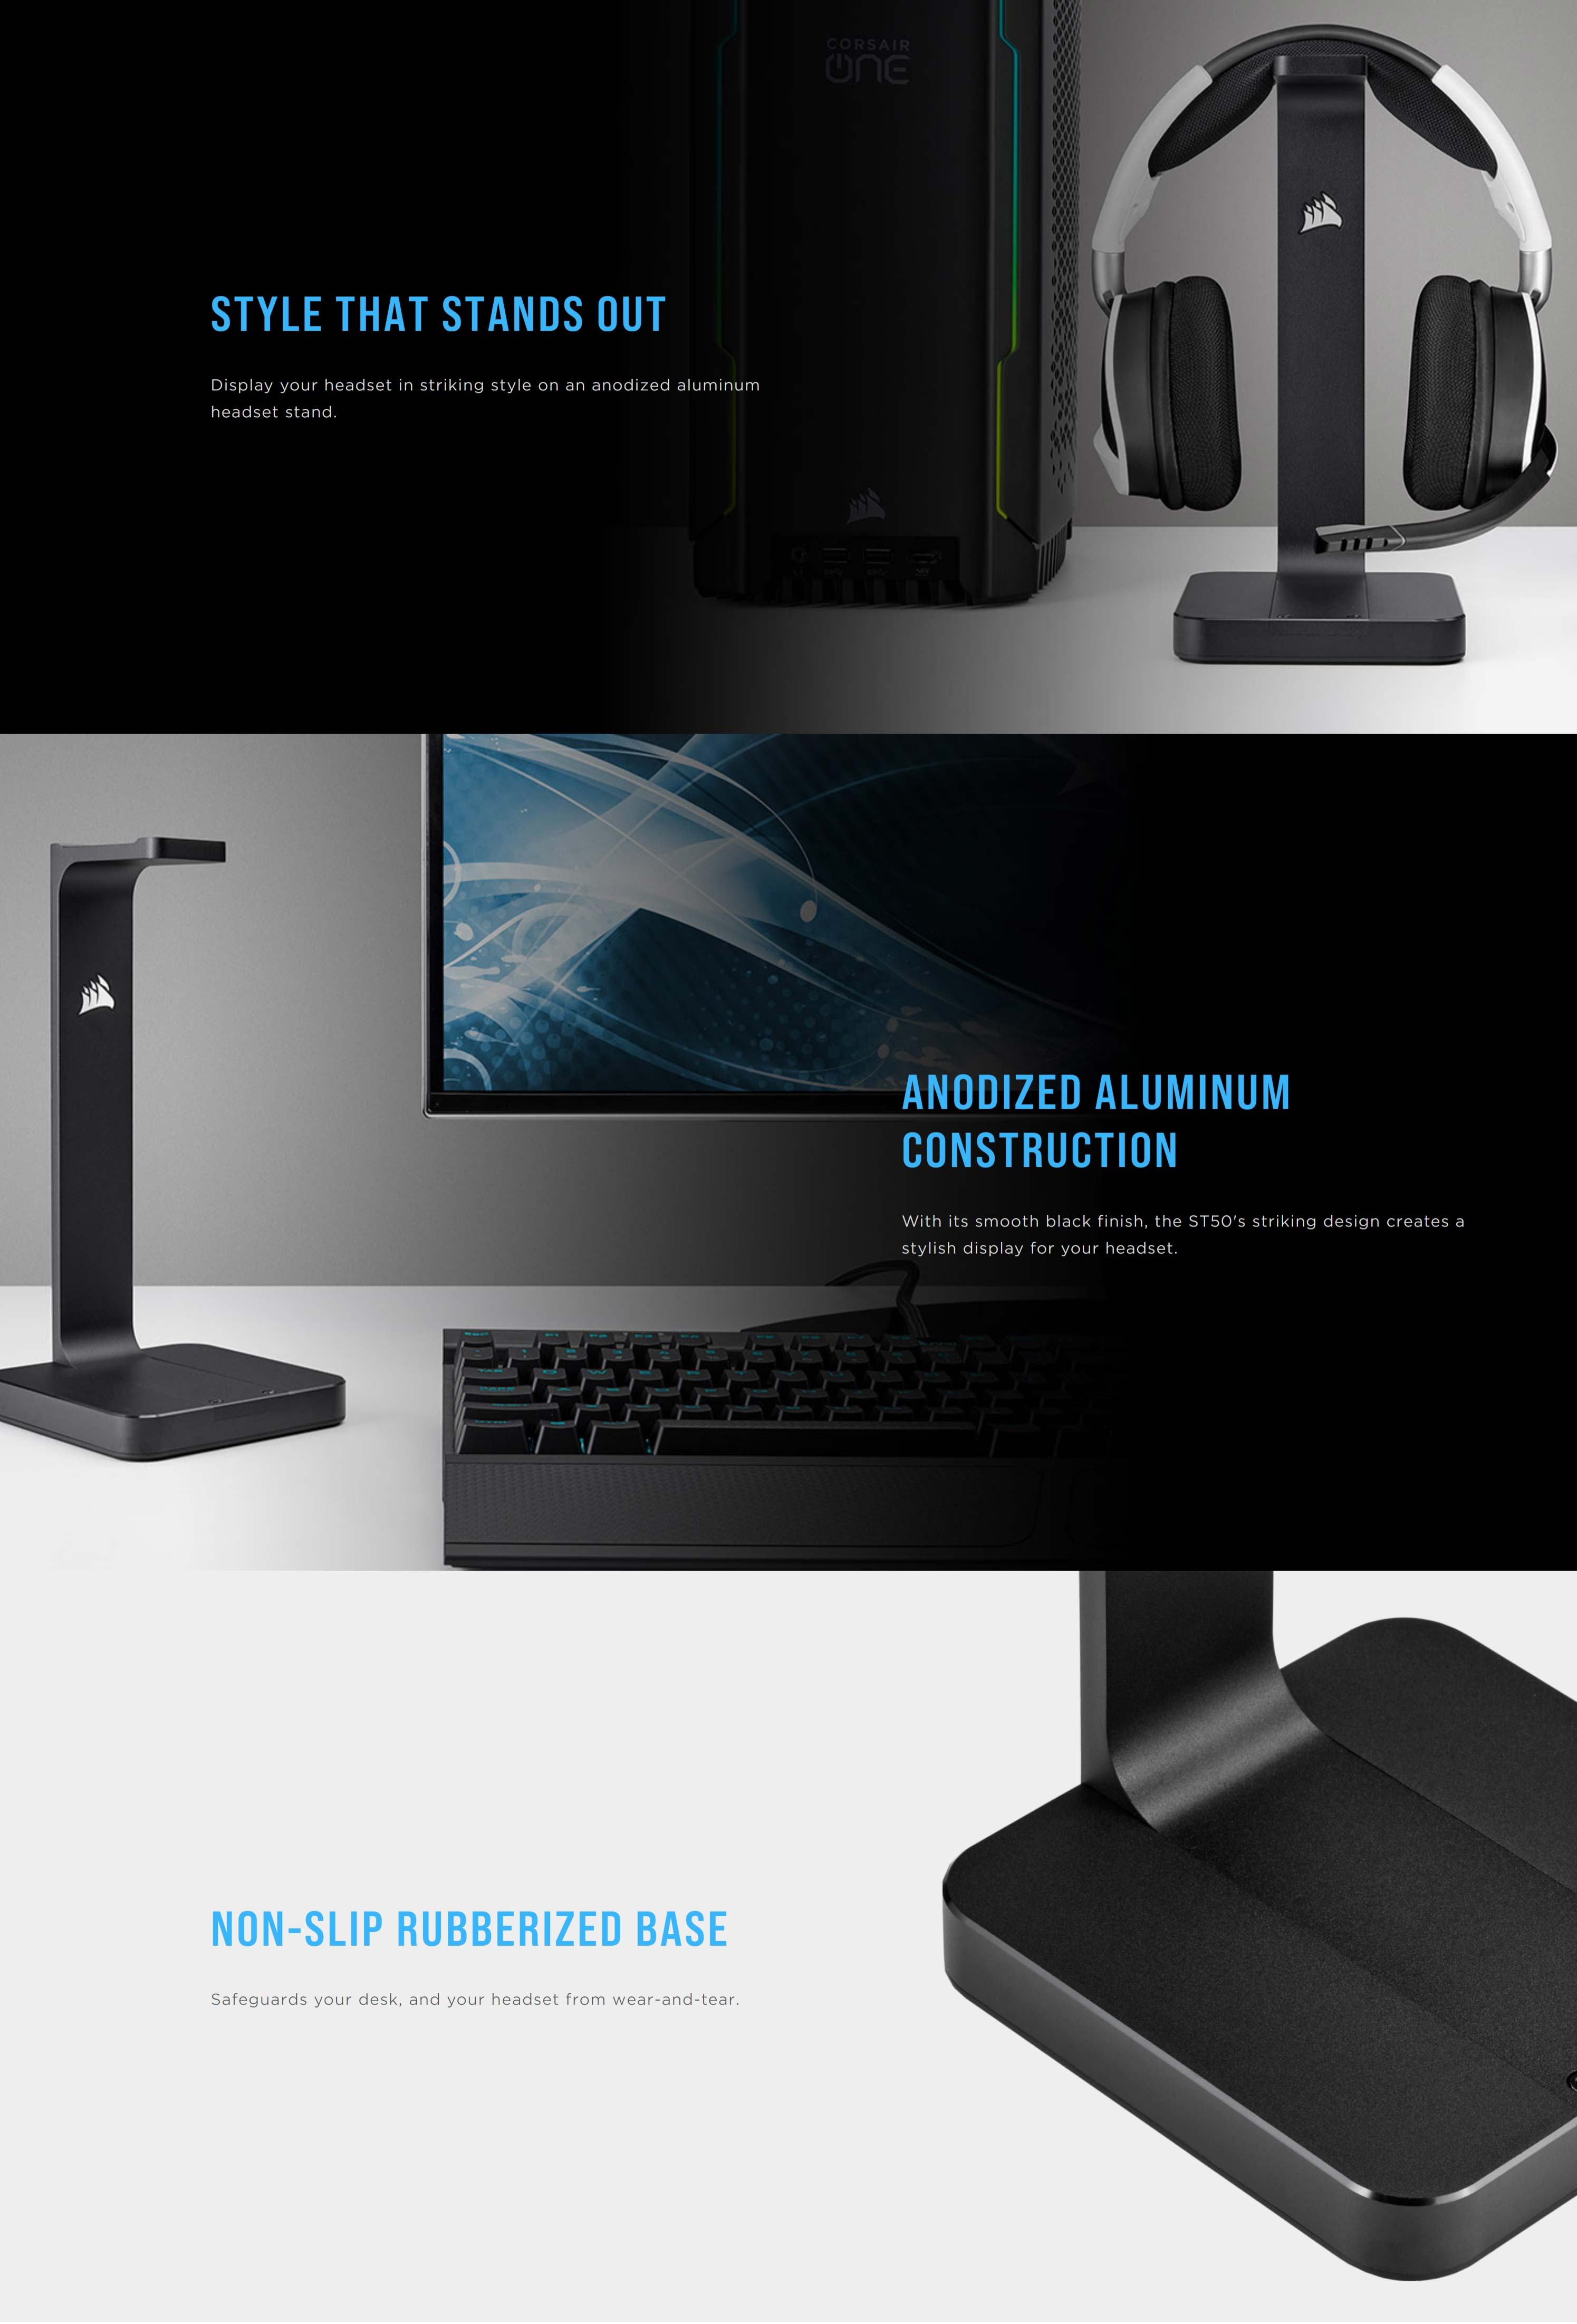 screencapture-corsair-us-en-Categories-Products-Gaming-Headsets-Headset-Stands-ST50-Premium-Headset-Stand-p-CA-9011221-NA-2020-02-03-14_09_23.jpg